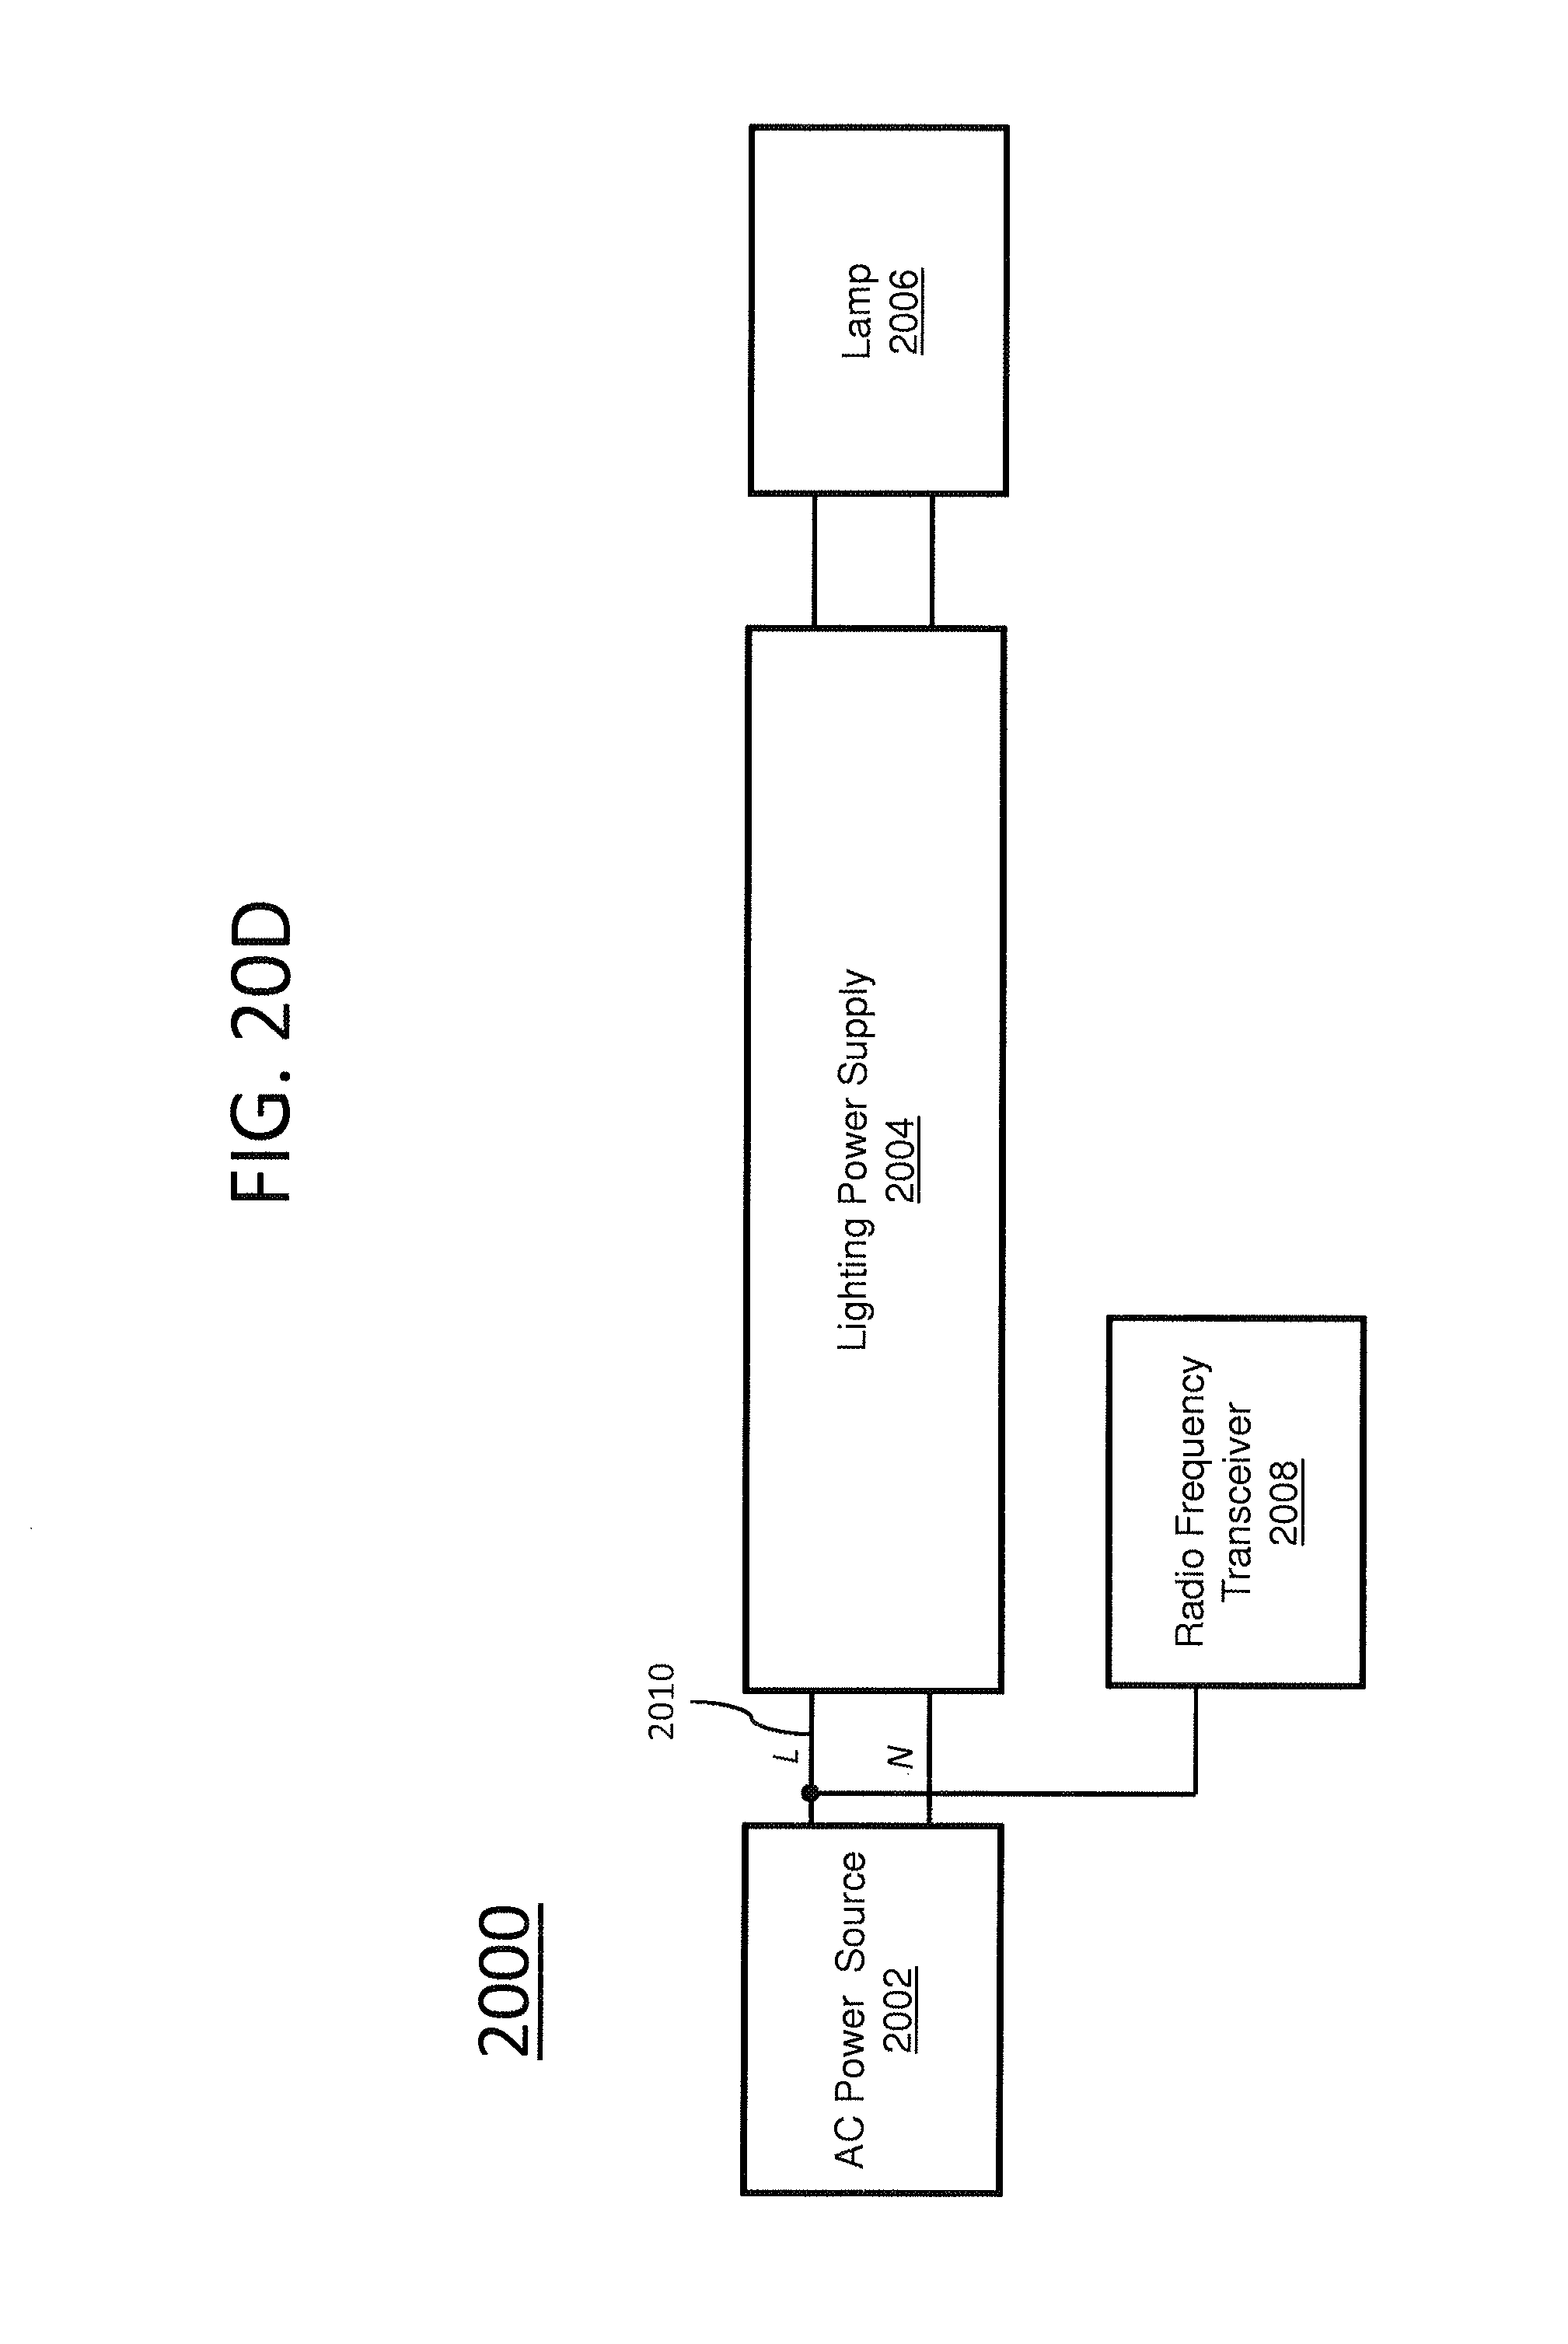 Patent Us 9692510 B2 110 And 220v Ac Led Voltage Indicator Circuit Diagram Instructions 0 Petitions